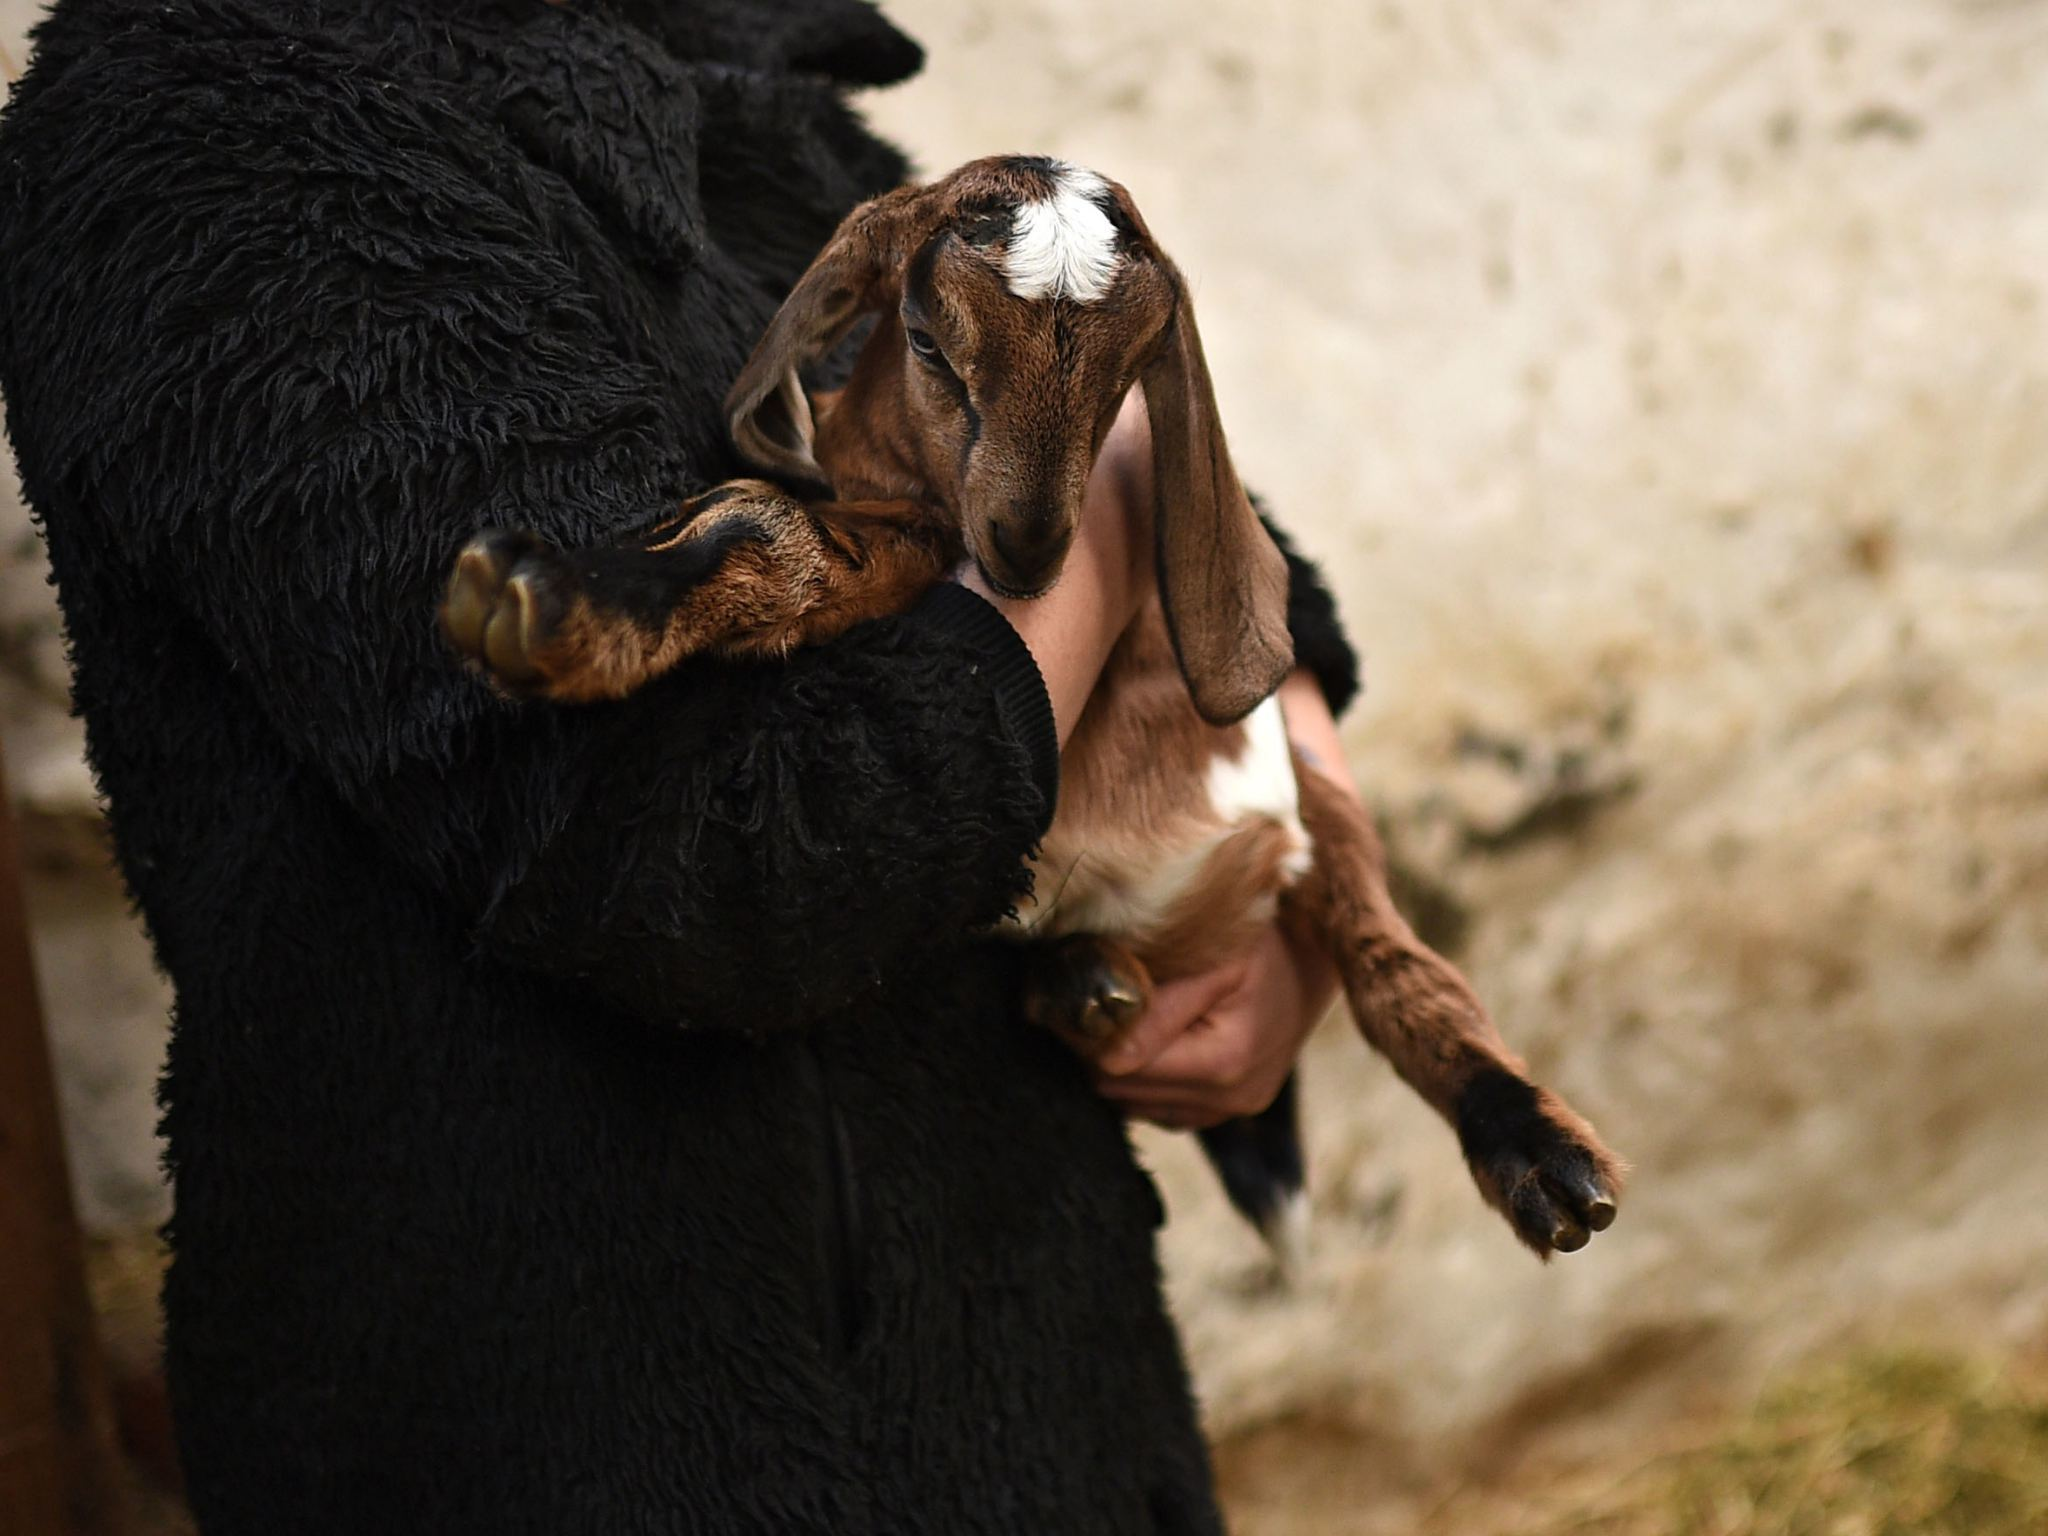 A woman cuddles a baby goat at the Collingwood Children's Farm